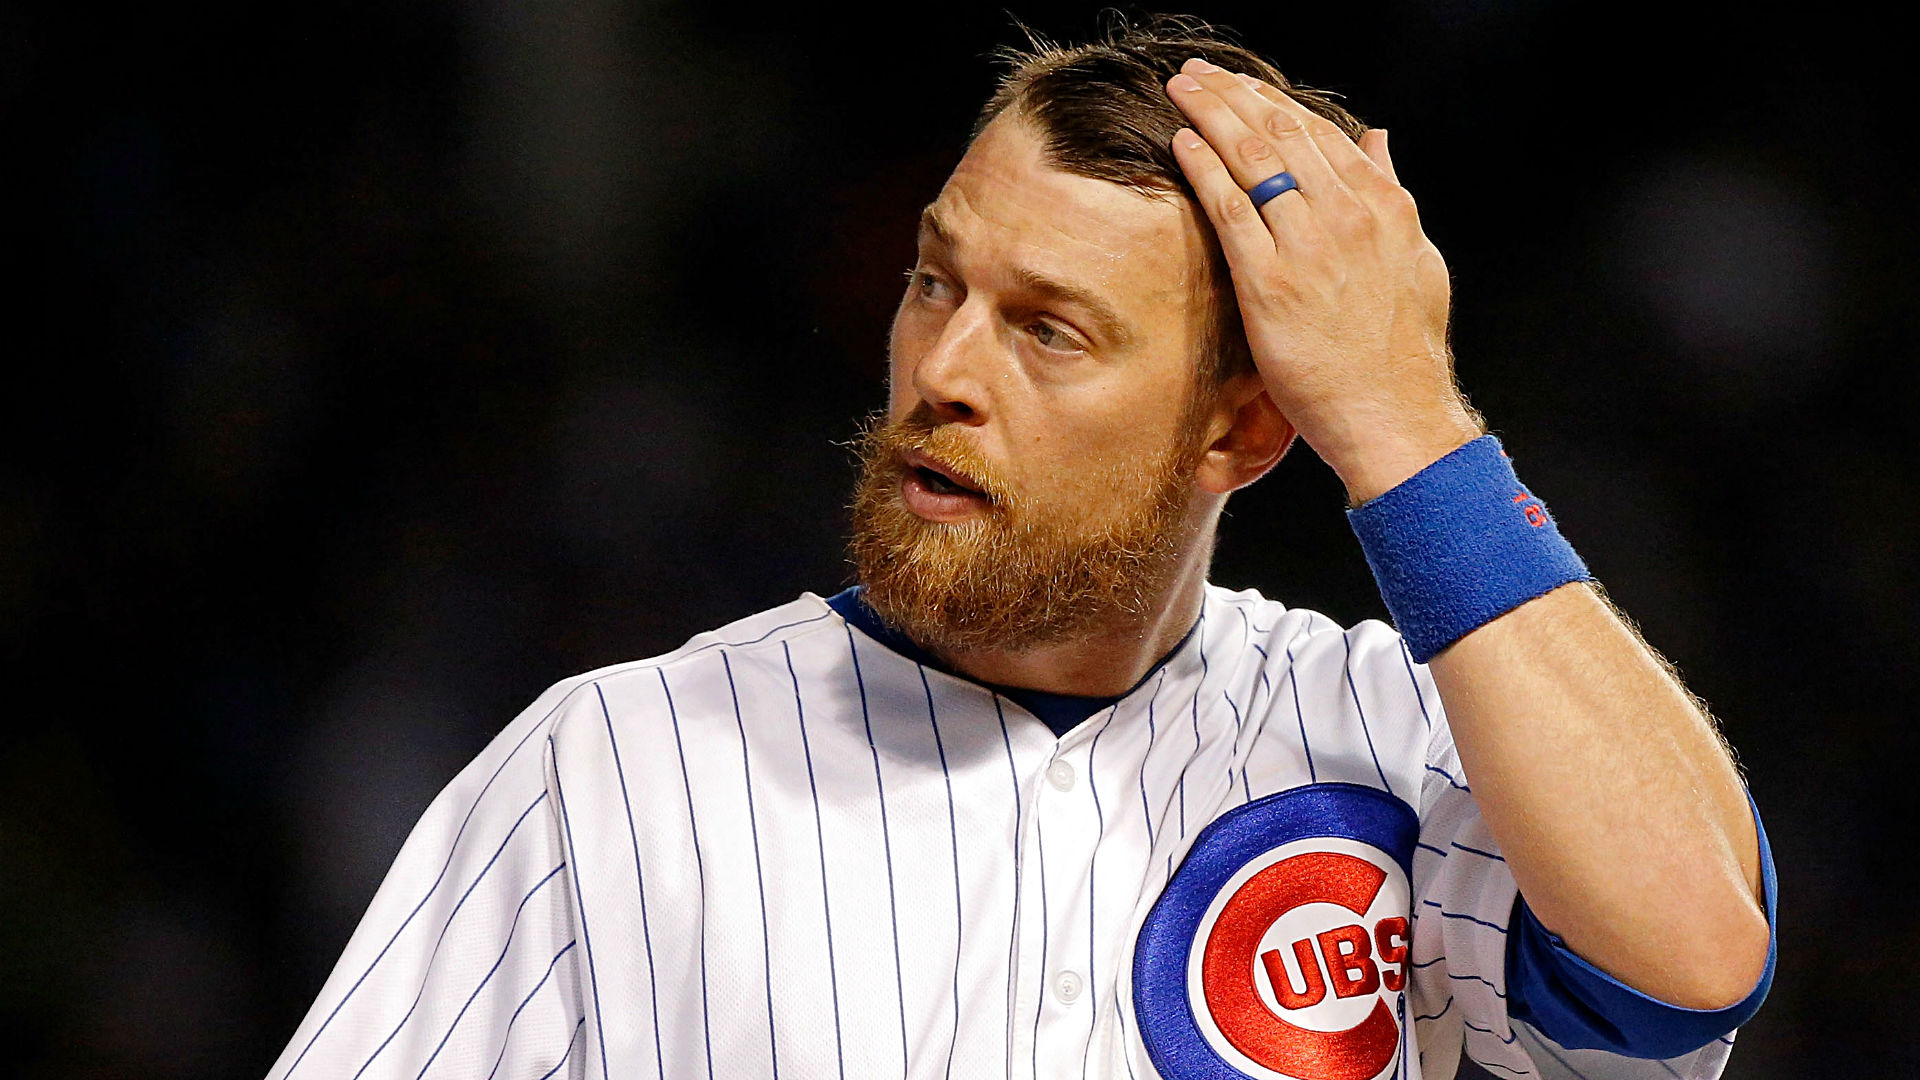 Ben Zobrist could return to Cubs this season, Theo Epstein says